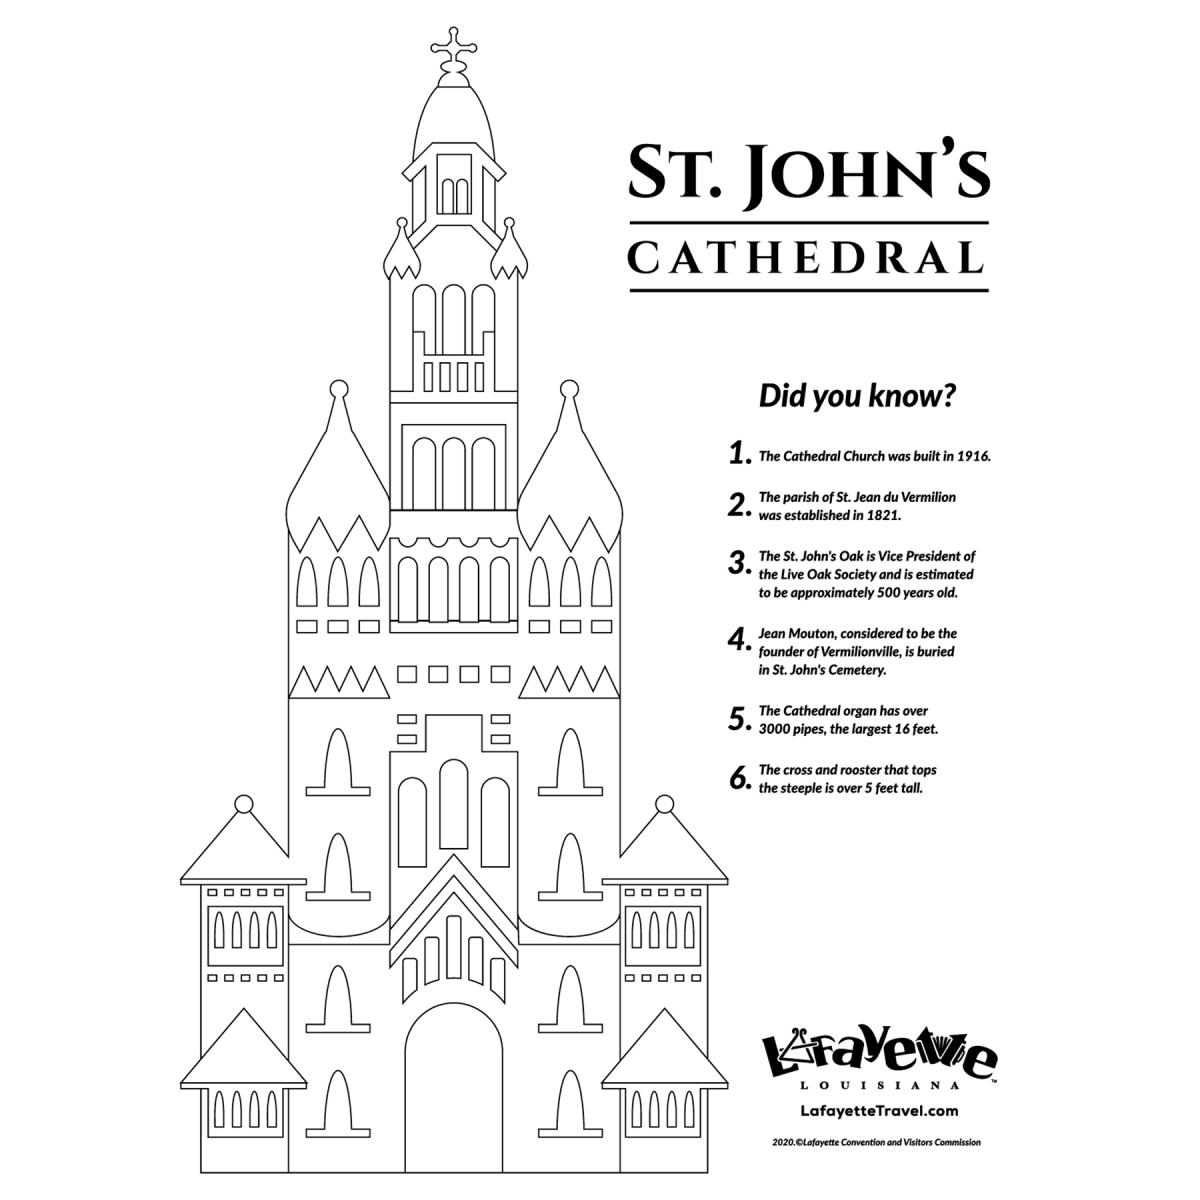 St. John's Cathedral - Coloring Sheet